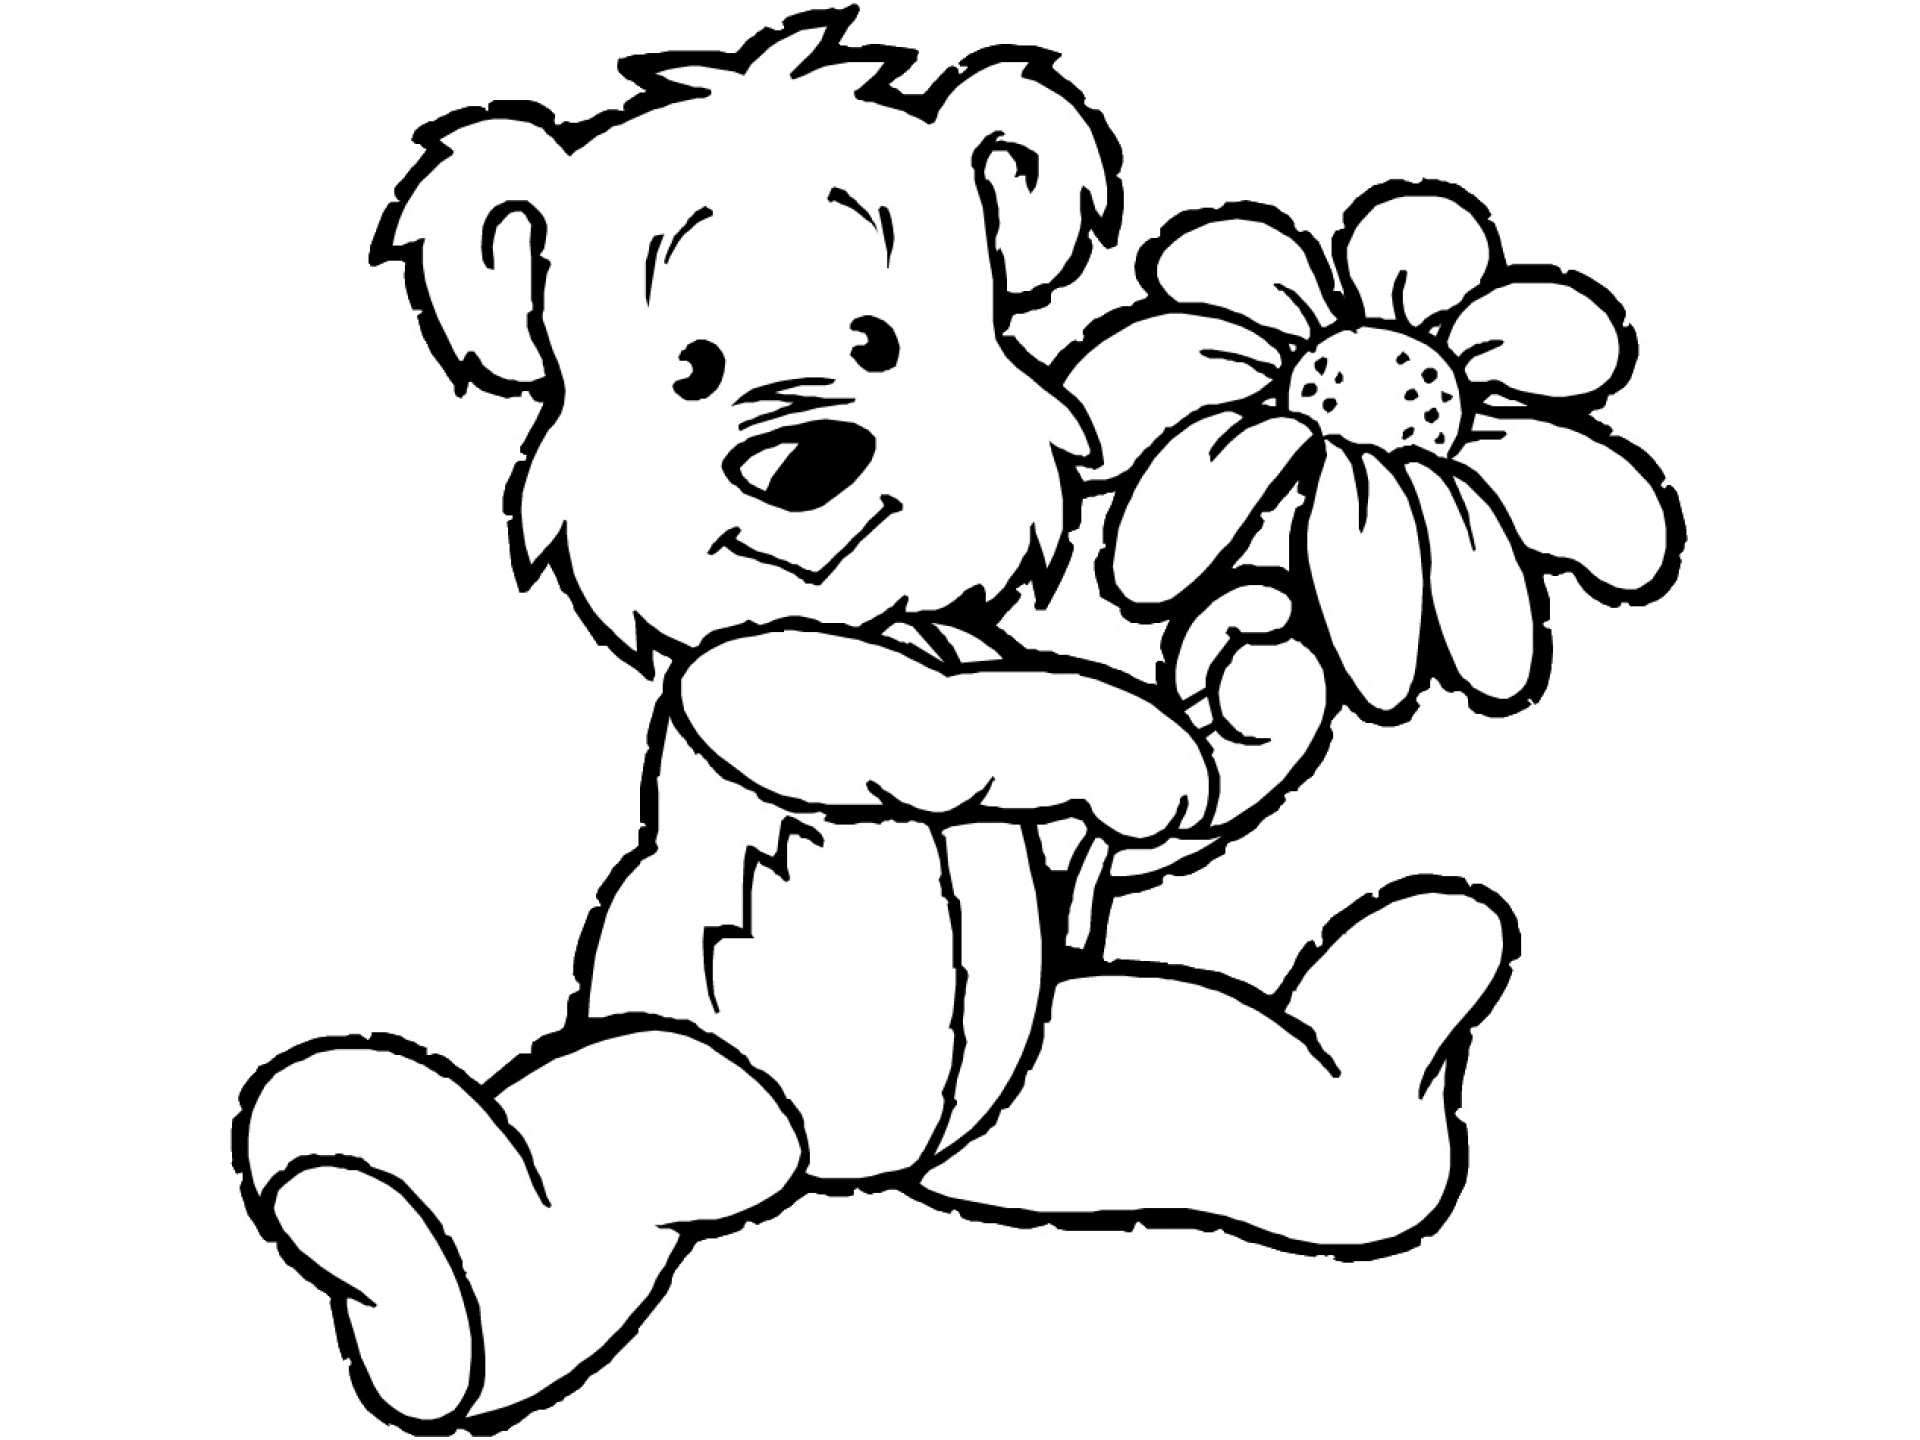 1920x1440 Cartoon Pictures For Coloring Pages